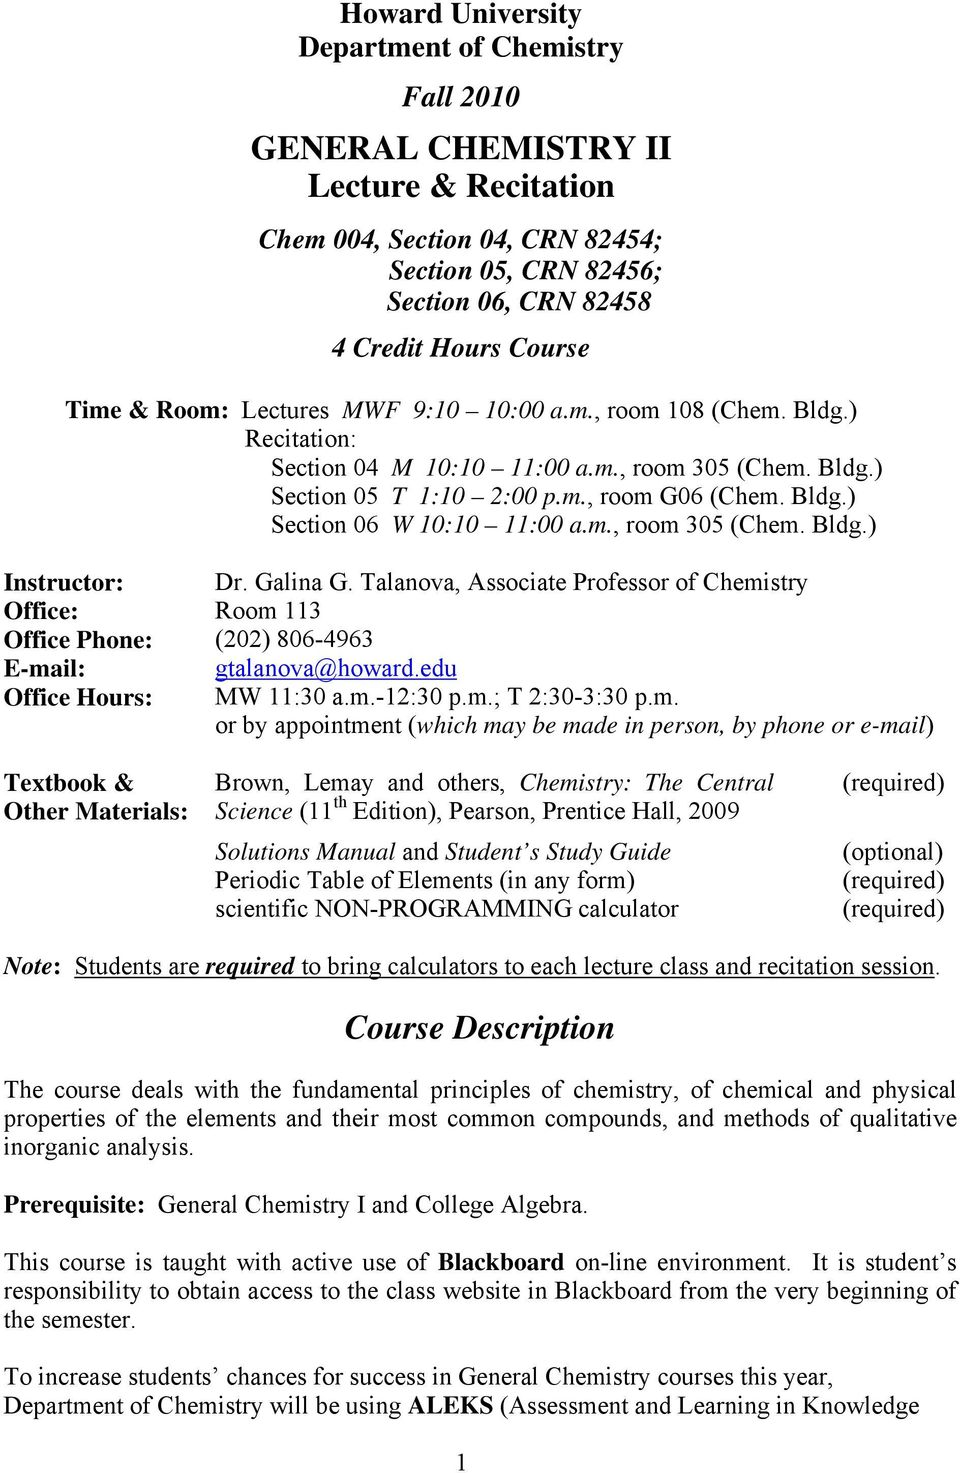 m., room 305 (Chem. Bldg.) Instructor: Office: Office Phone: E-mail: Office Hours: Dr. Galina G. Talanova, Associate Professor of Chemistry Room 113 (202) 806-4963 gtalanova@howard.edu MW 11:30 a.m.-12:30 p.